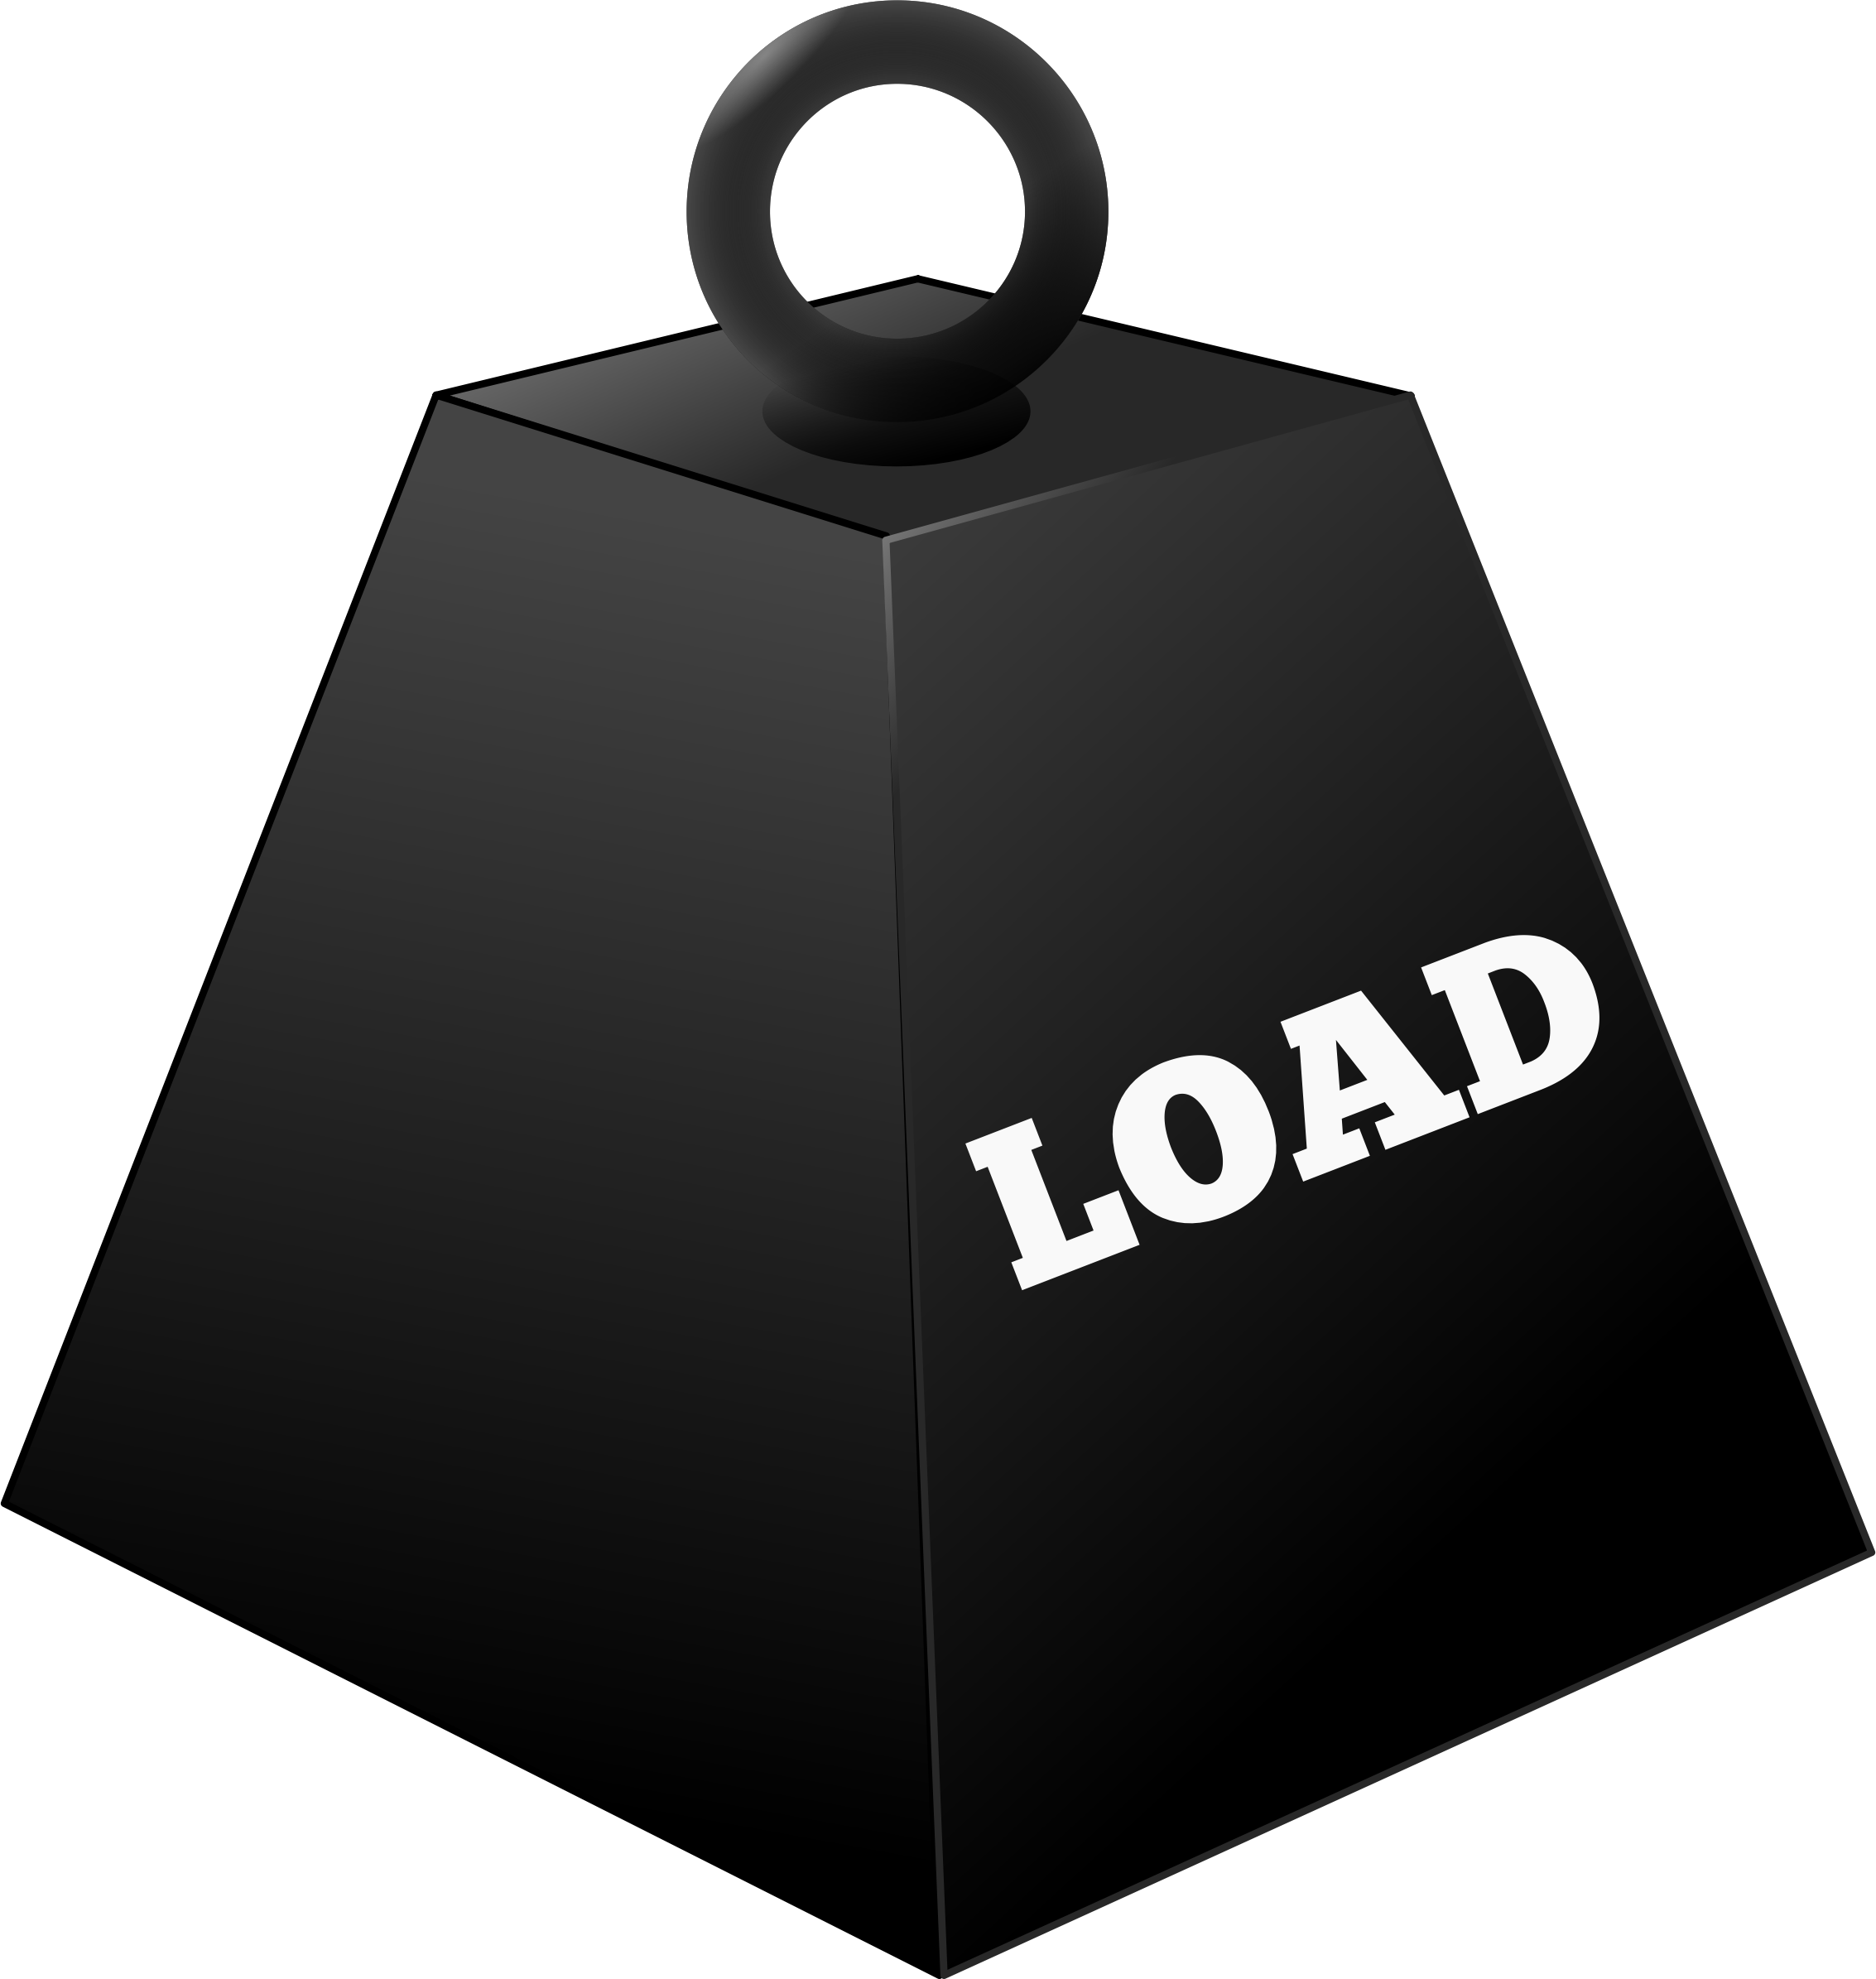 Load by Alastair